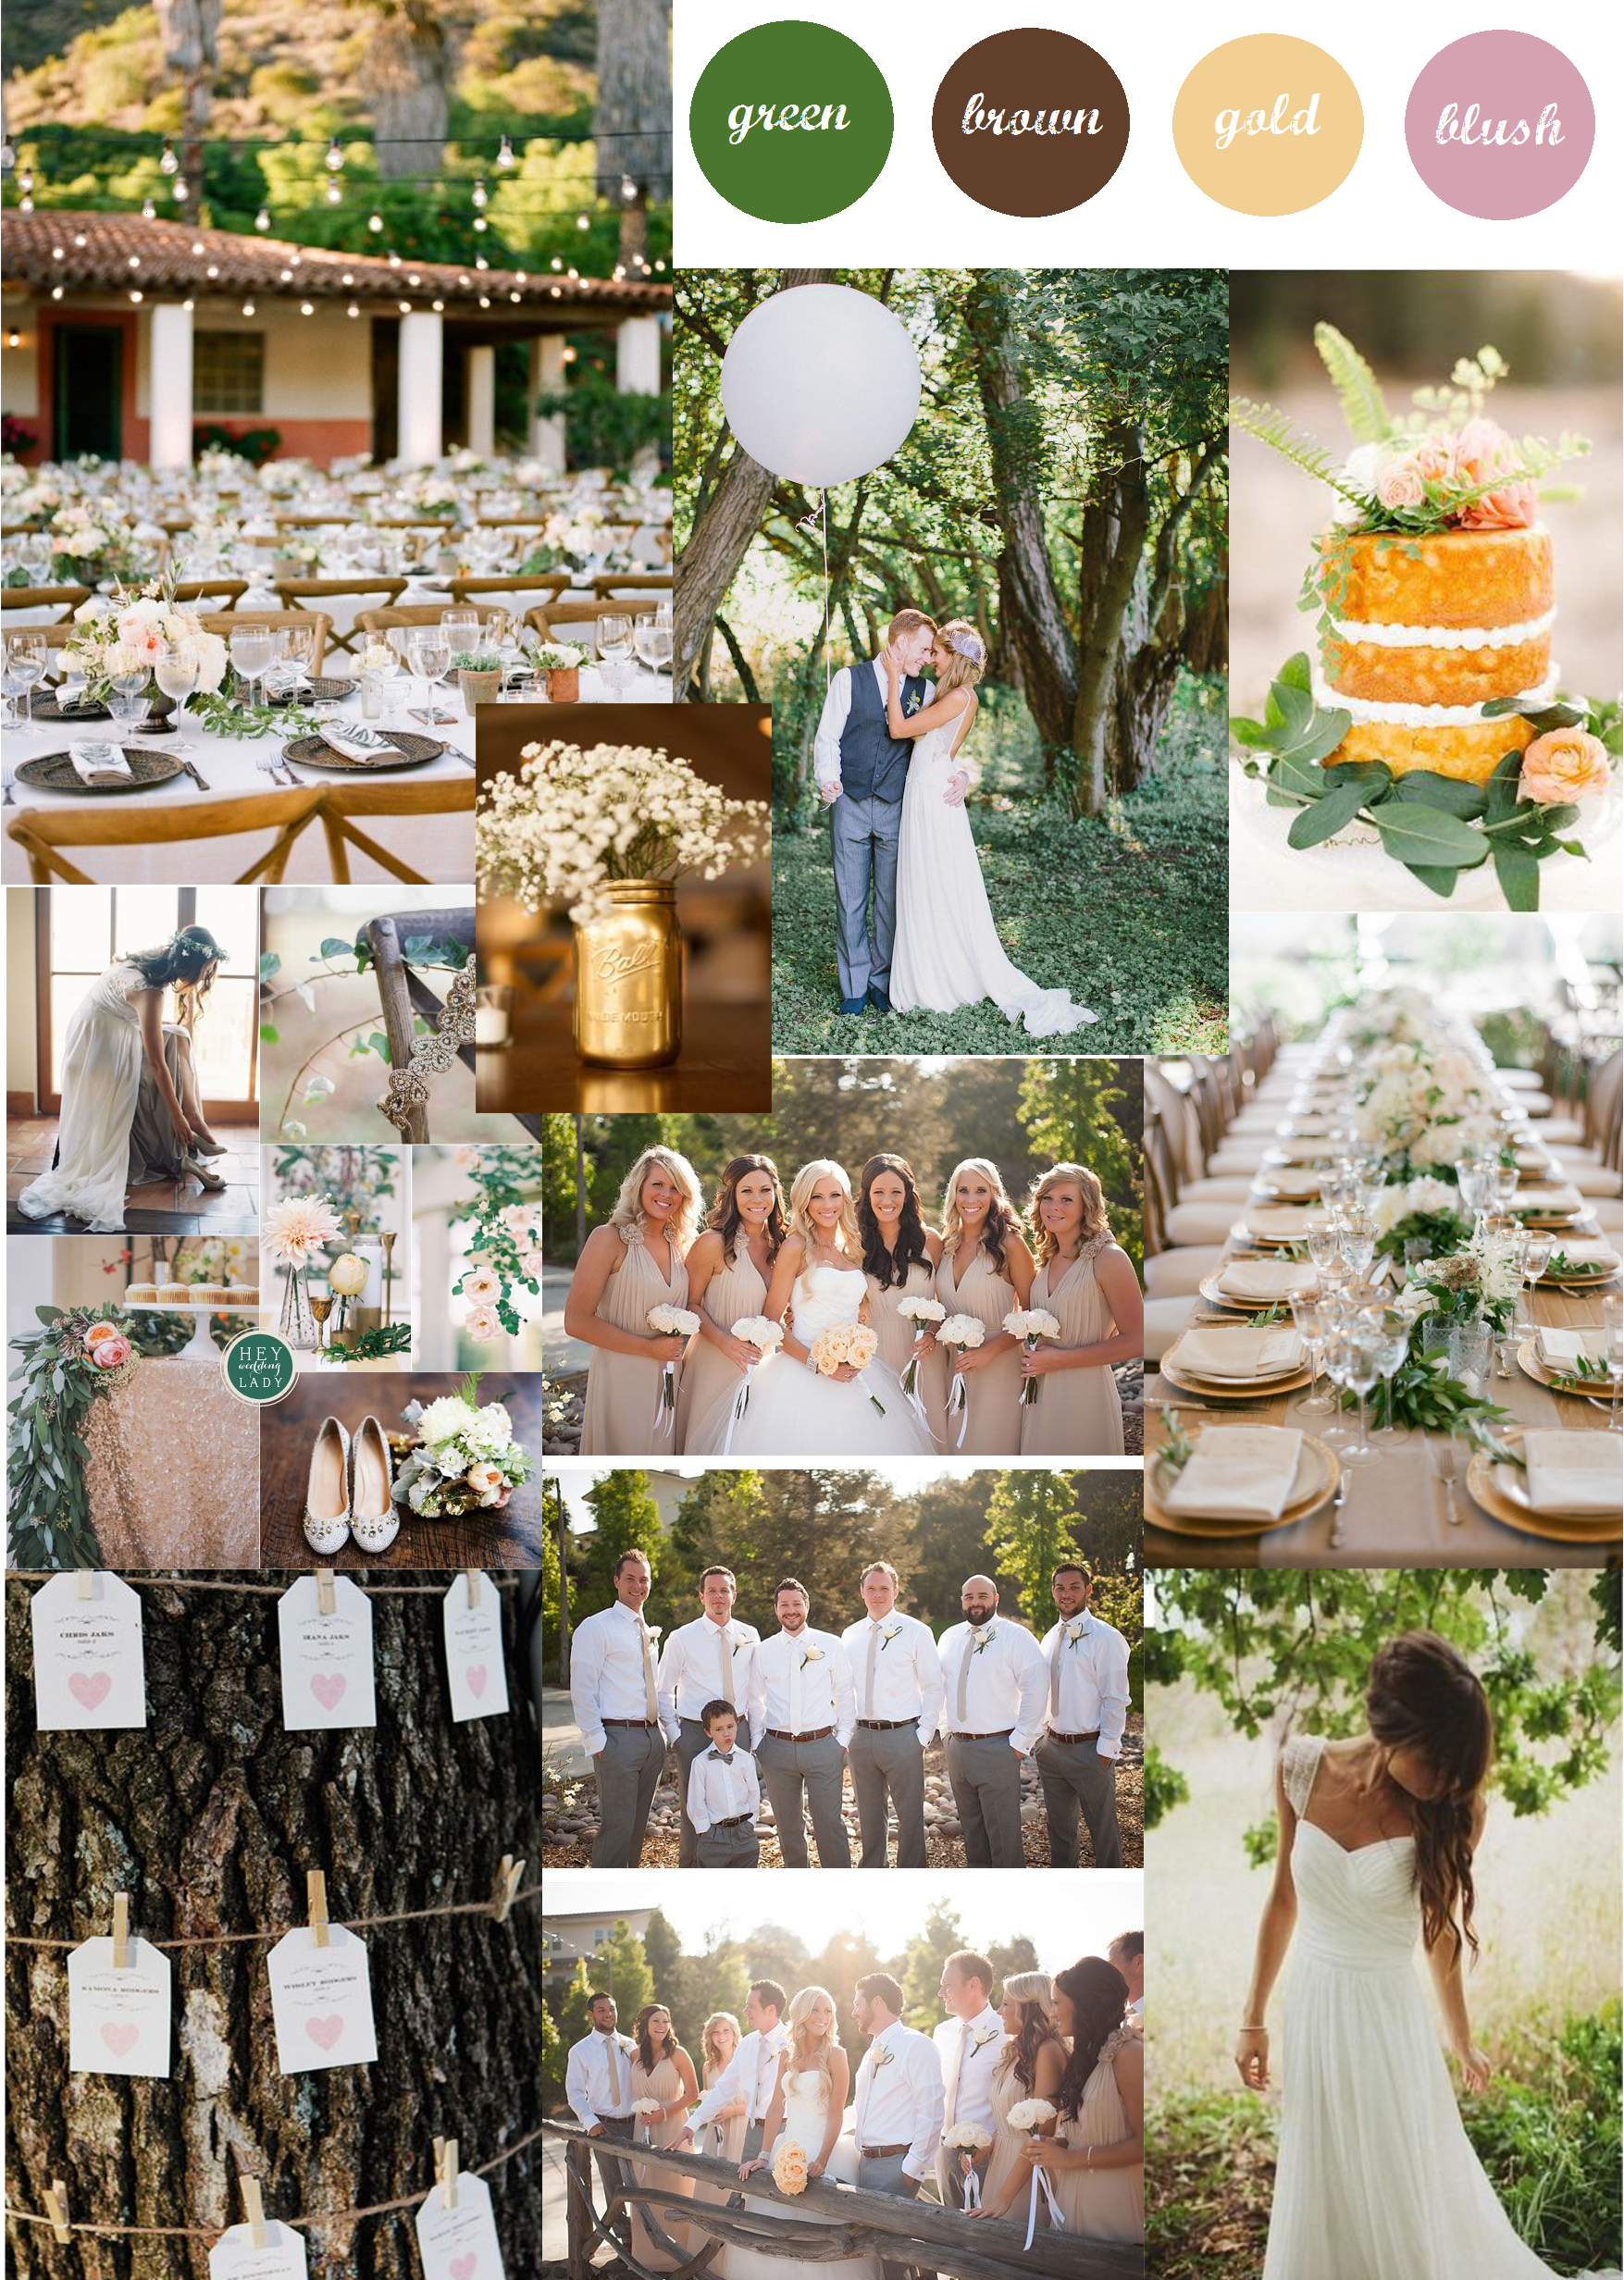 Our Colour Scheme Forest Green Bark Brown Blush And Hints Of Gold For An Outdoor Summer Wedding